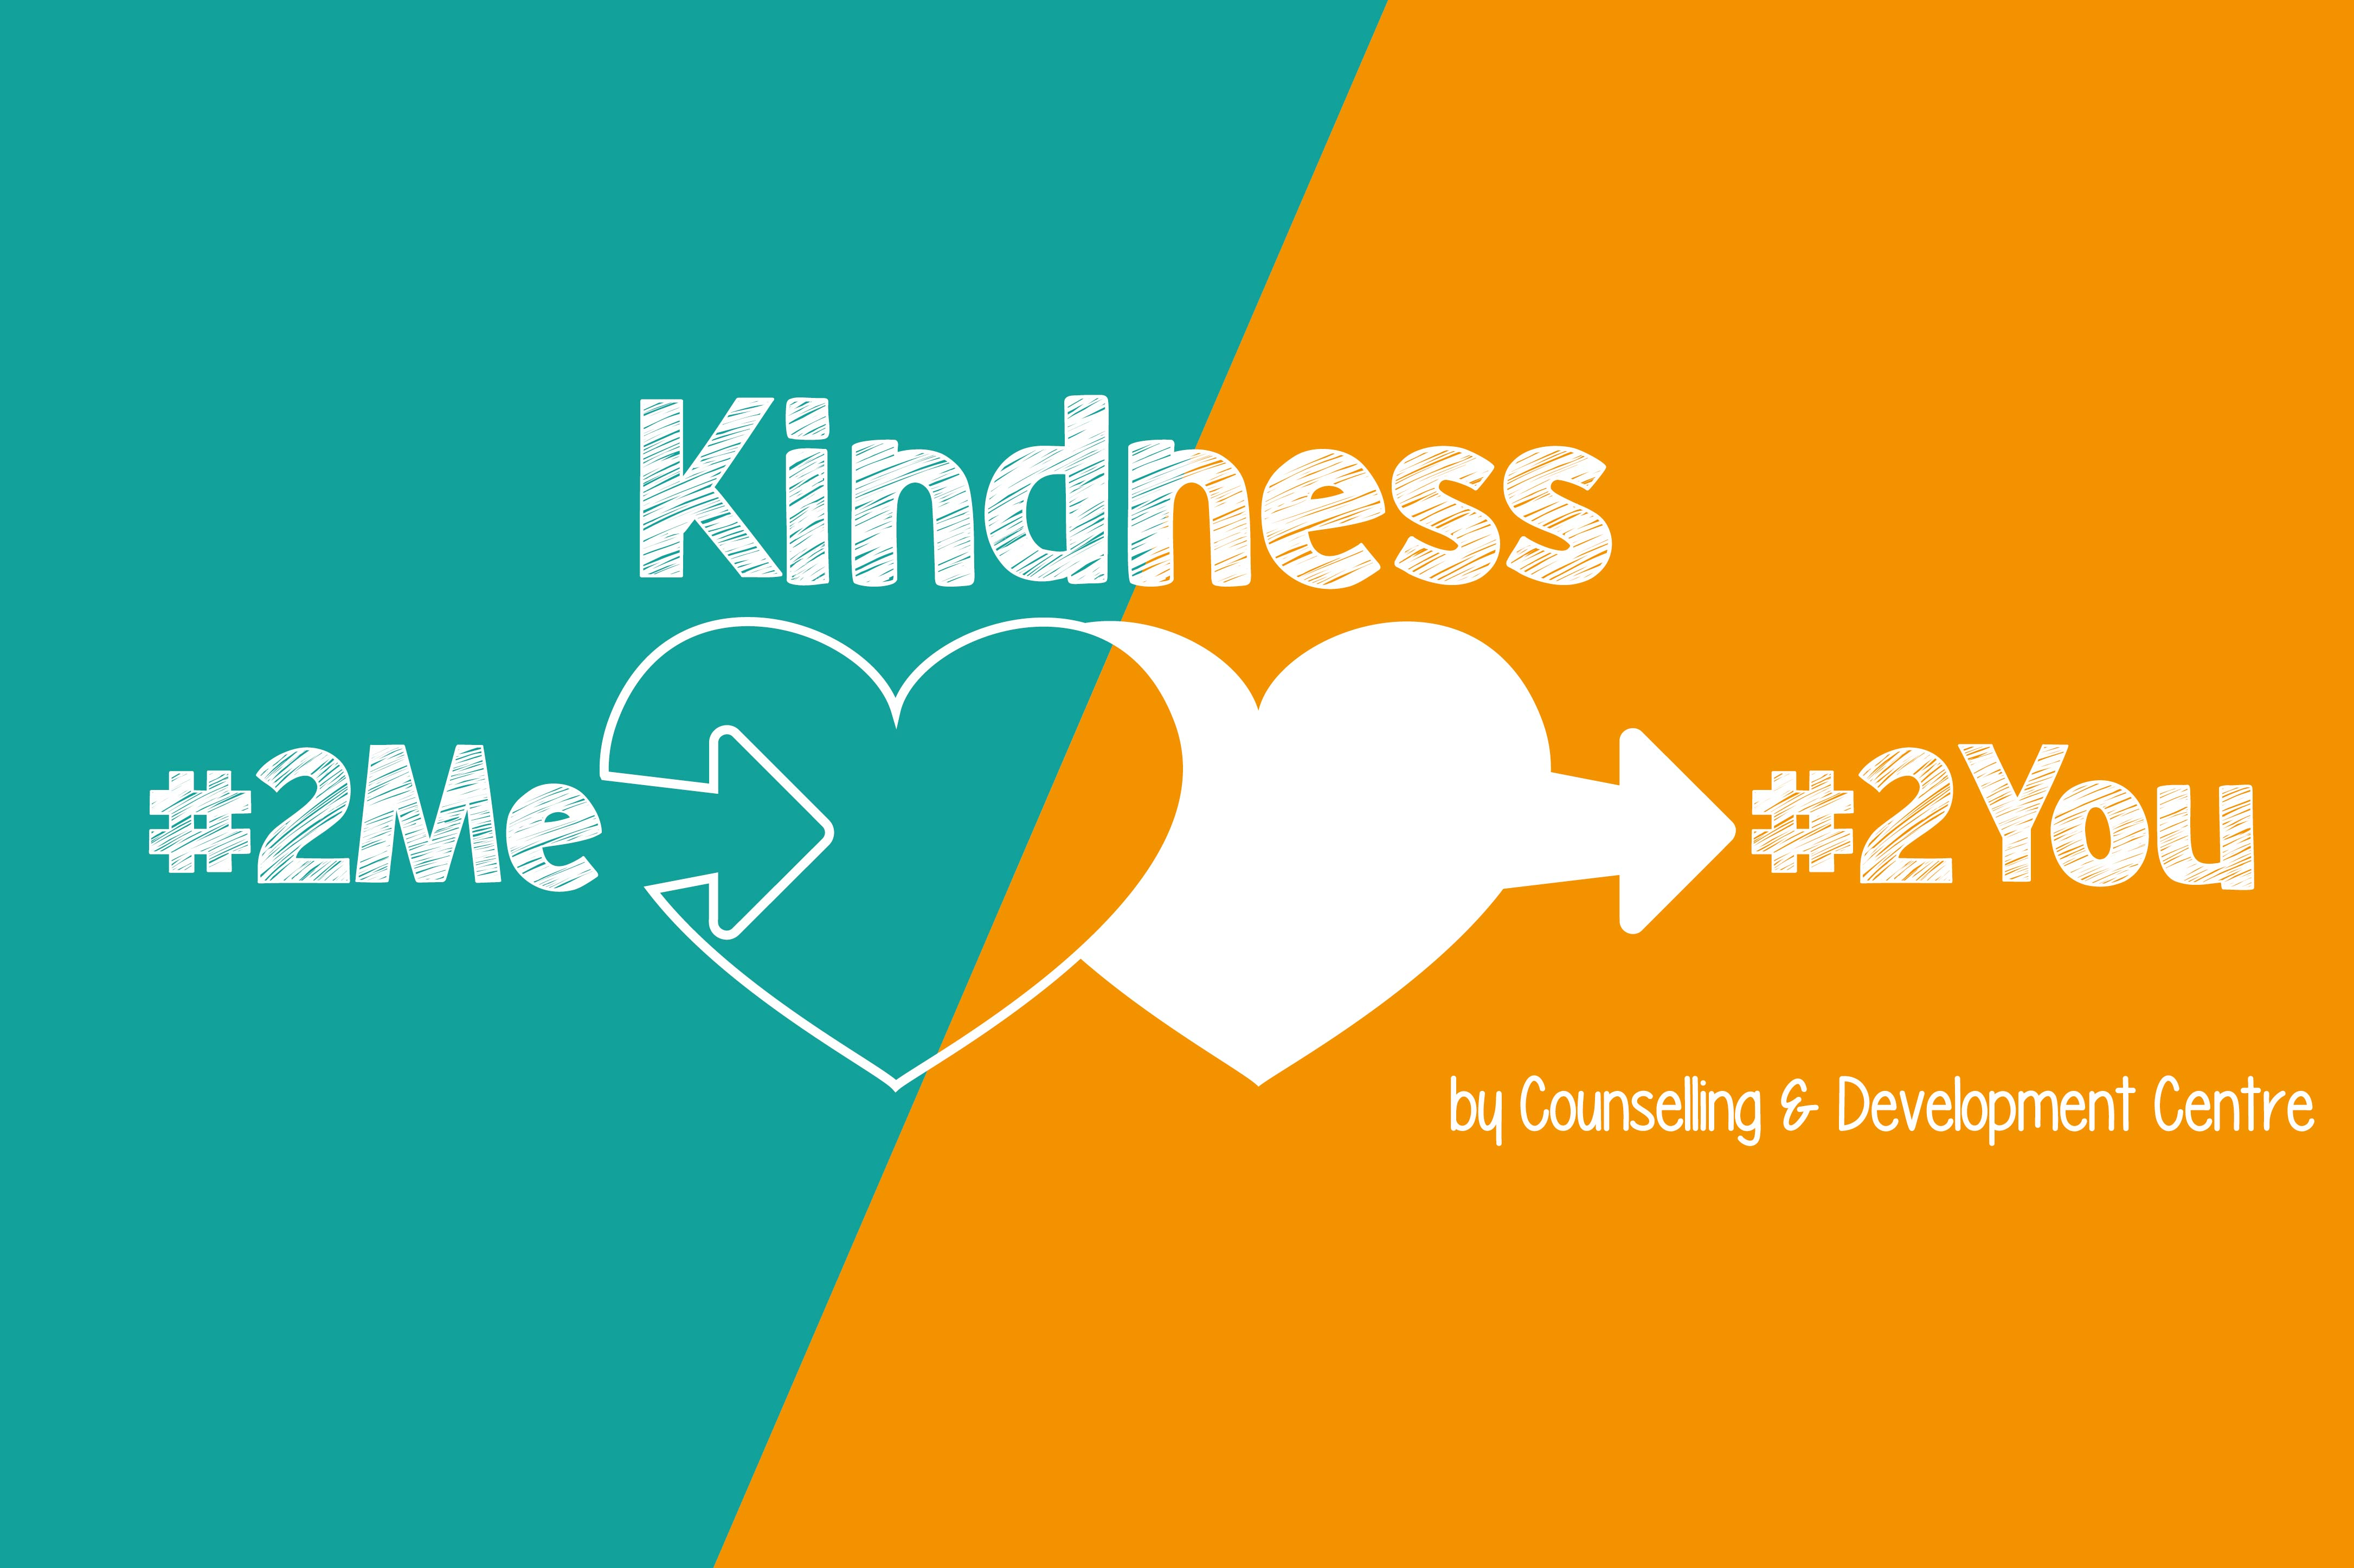 How To Be Kind To Self & Others